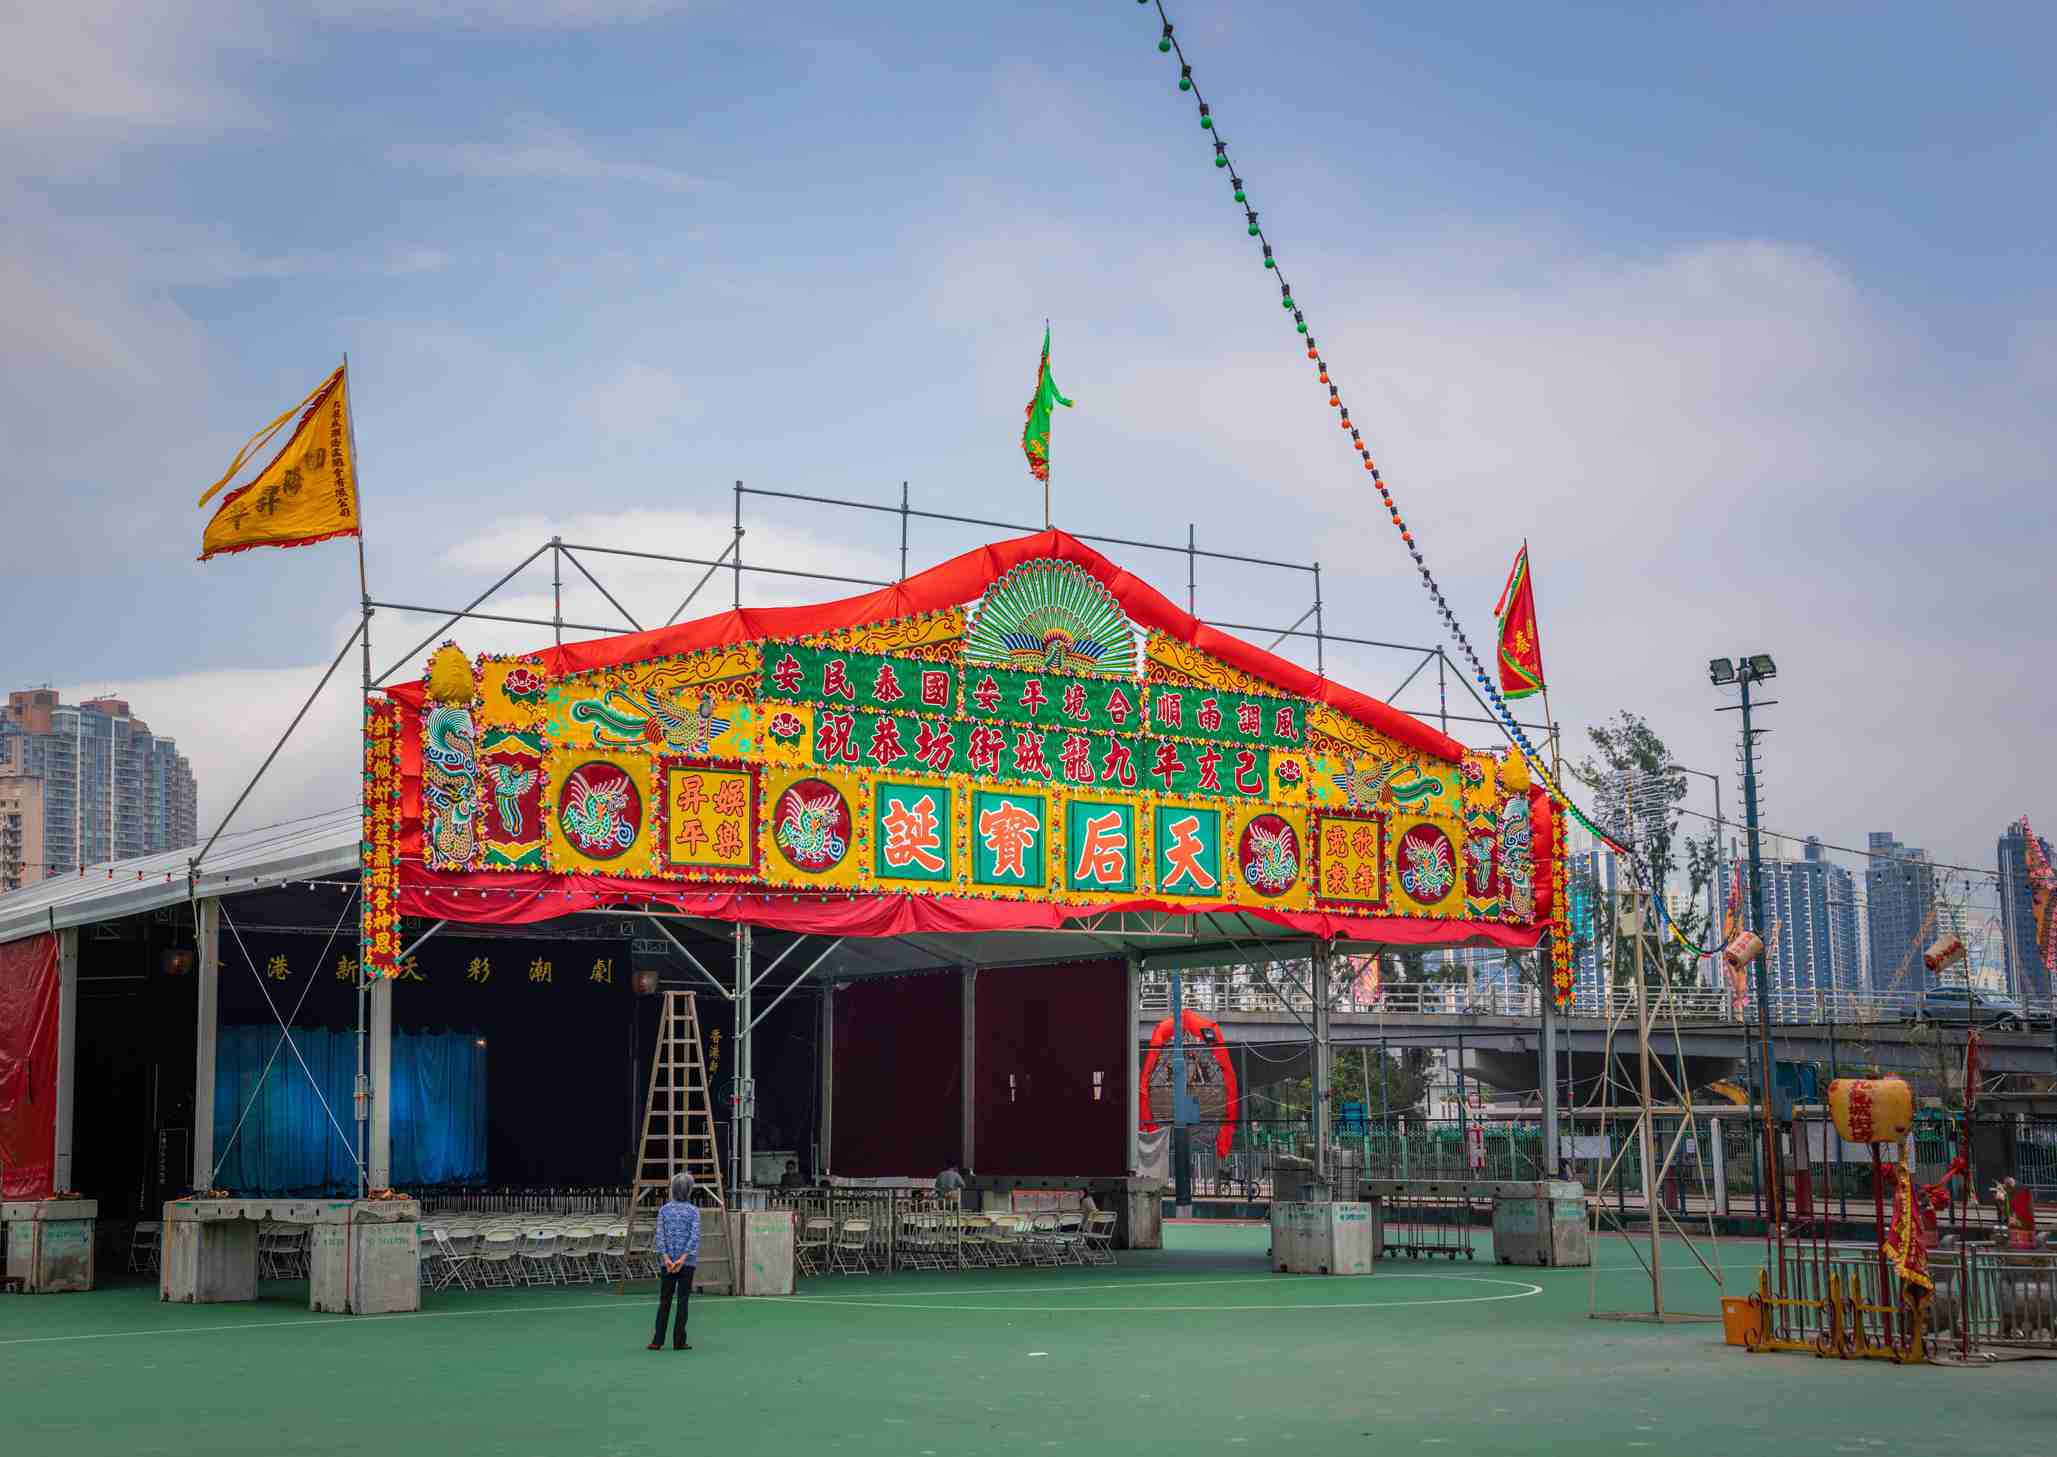 Chinese opera stage for Hungry Ghost Festival, Hong Kong